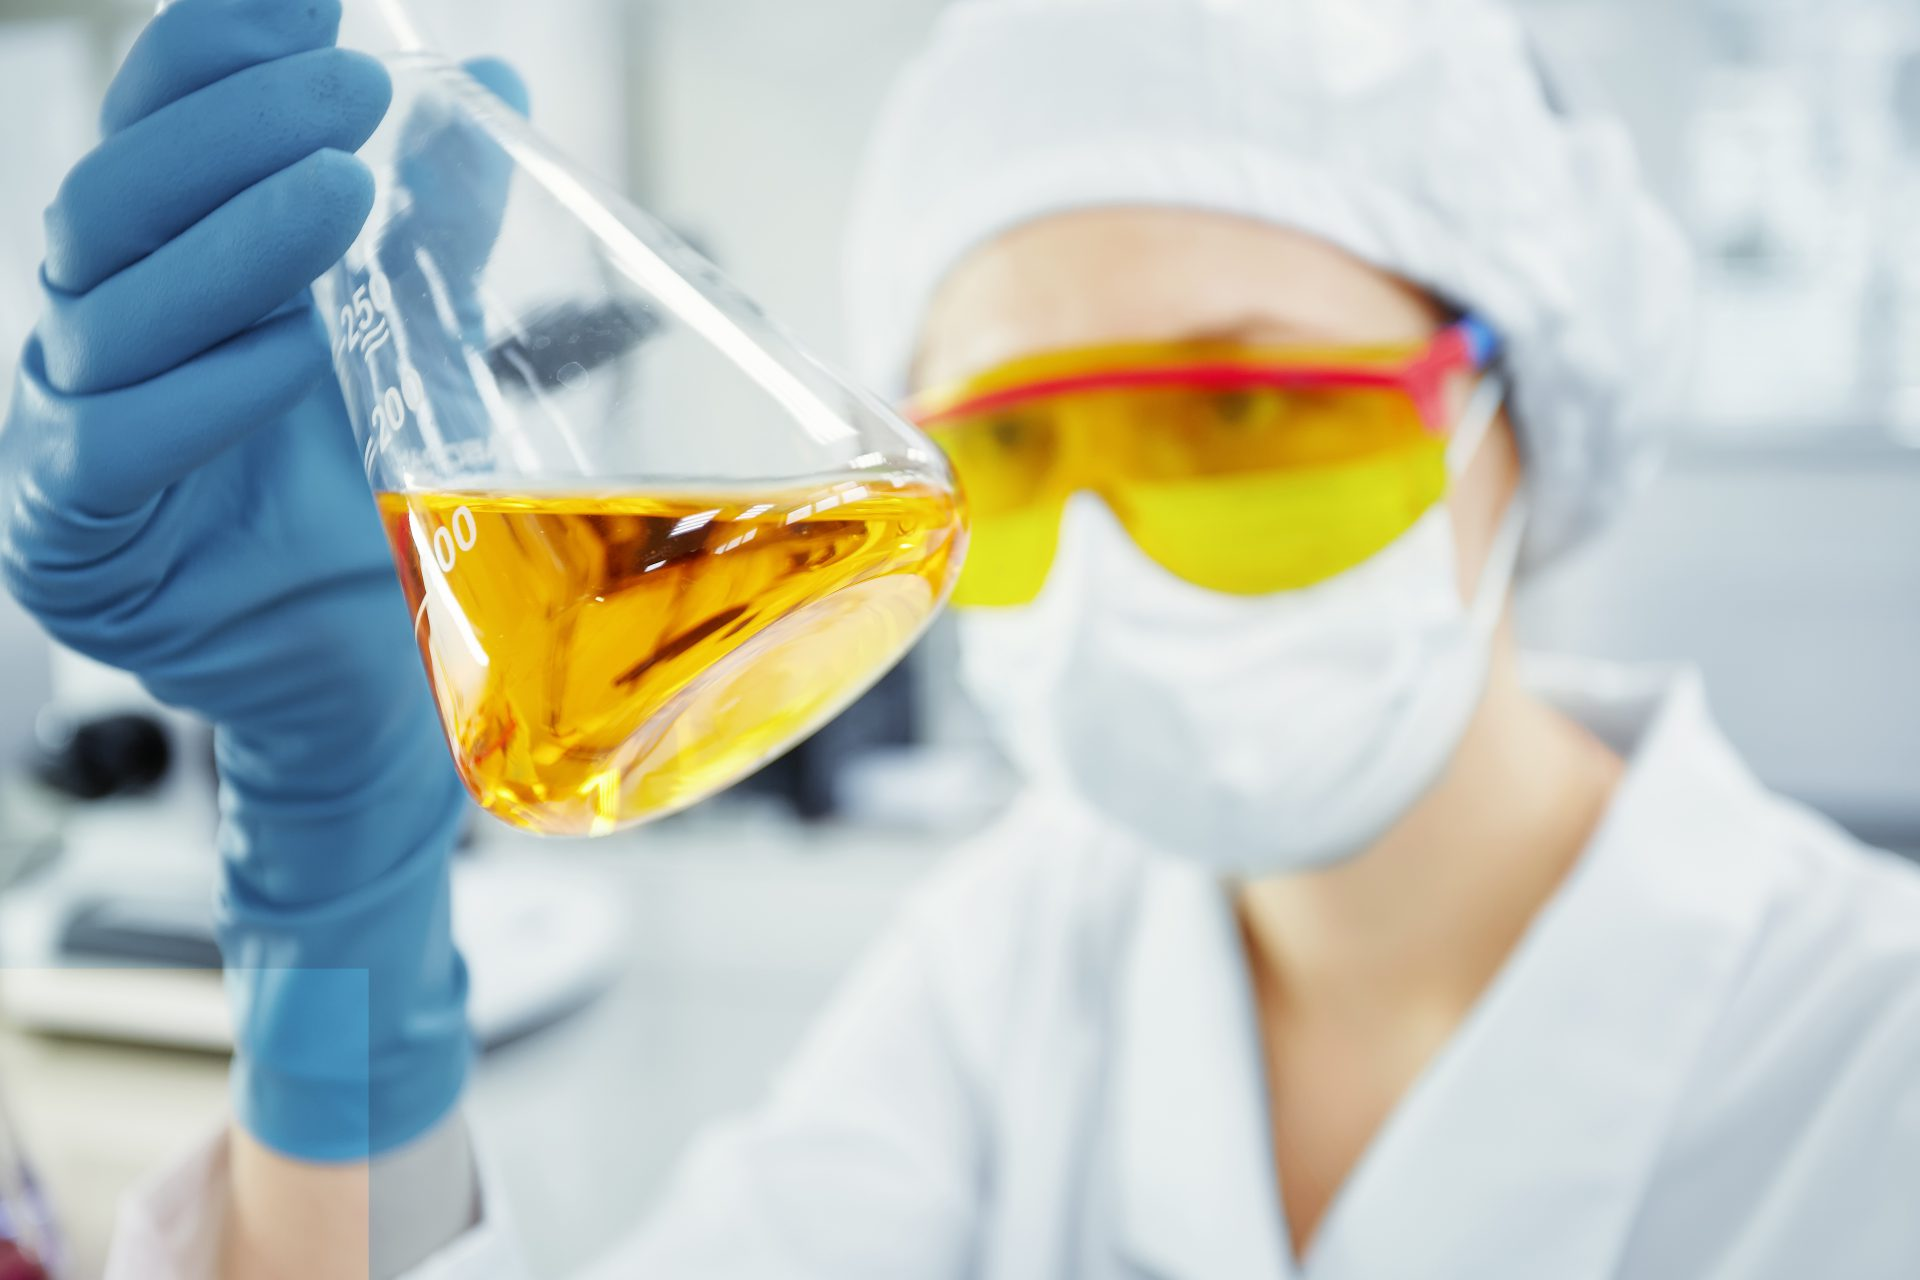 lose up portrait of young woman's hands holding test tube with yellow liquid. Medical researcher or doctor wearing surgical mask and safety glasses looking at glass tube while working in laboratory